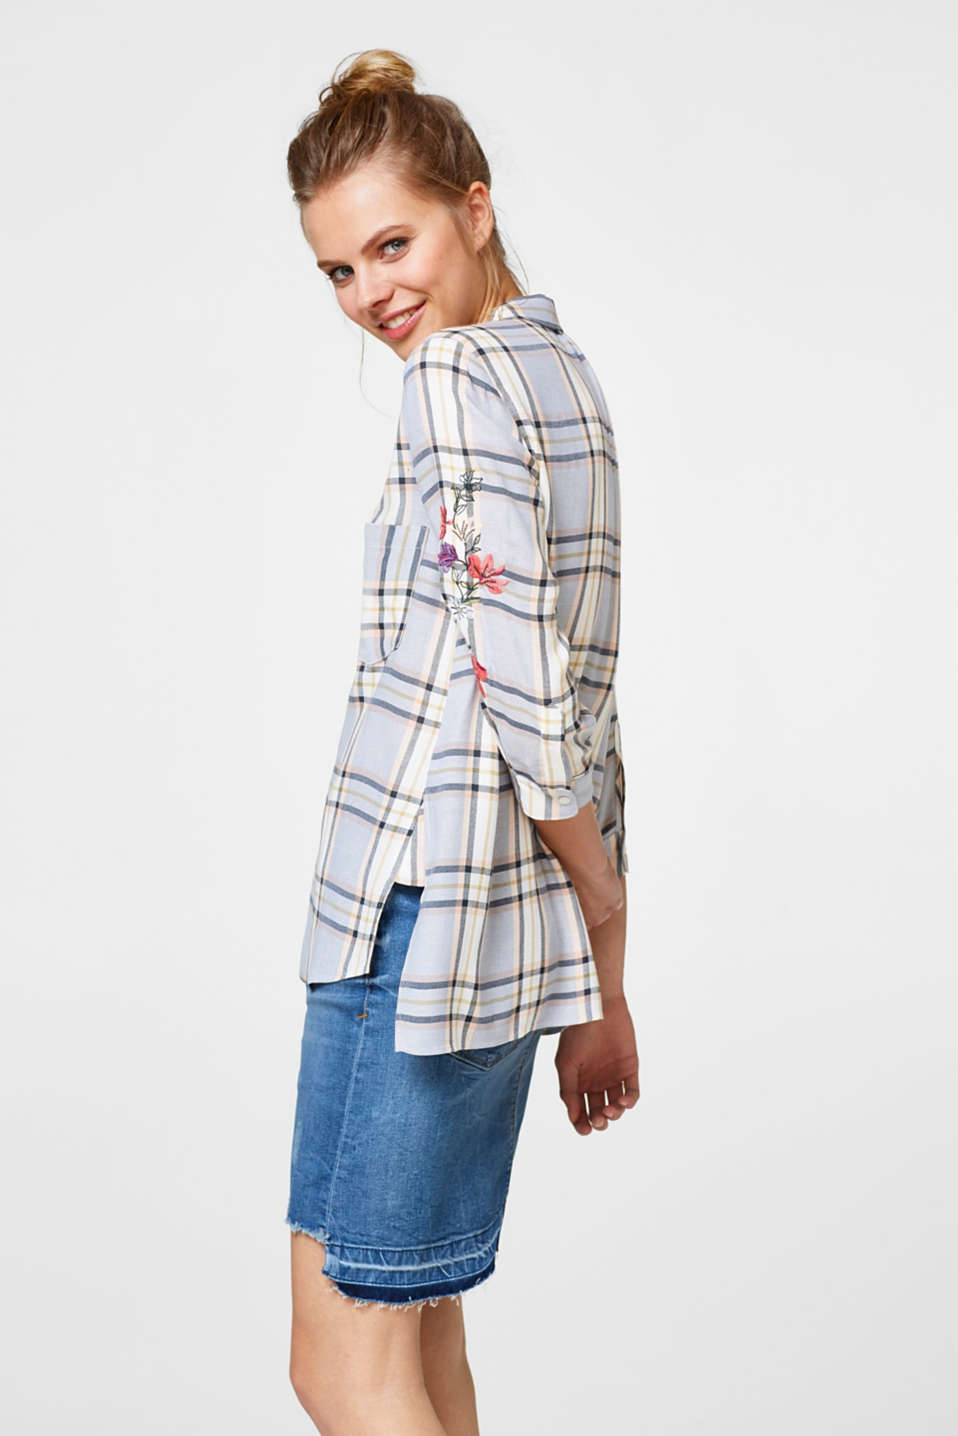 Esprit - Checked blouse with floral embroidery